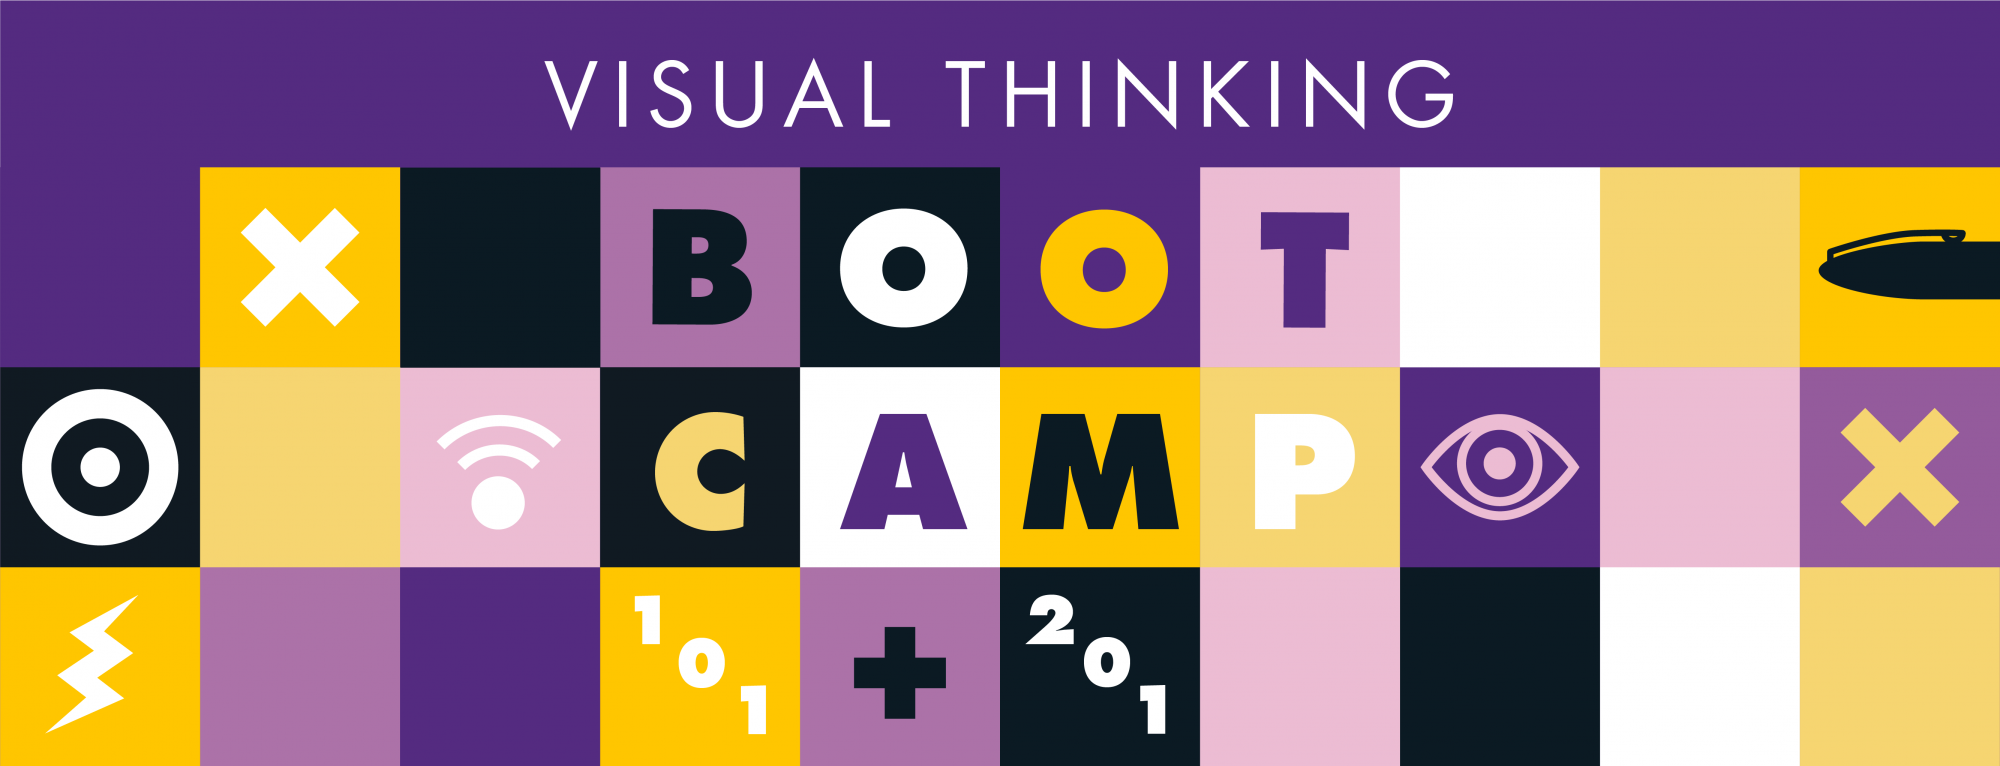 Header image using different coloured boxes with icons. Text says Visual Thinking Bootcamp 101 + 201